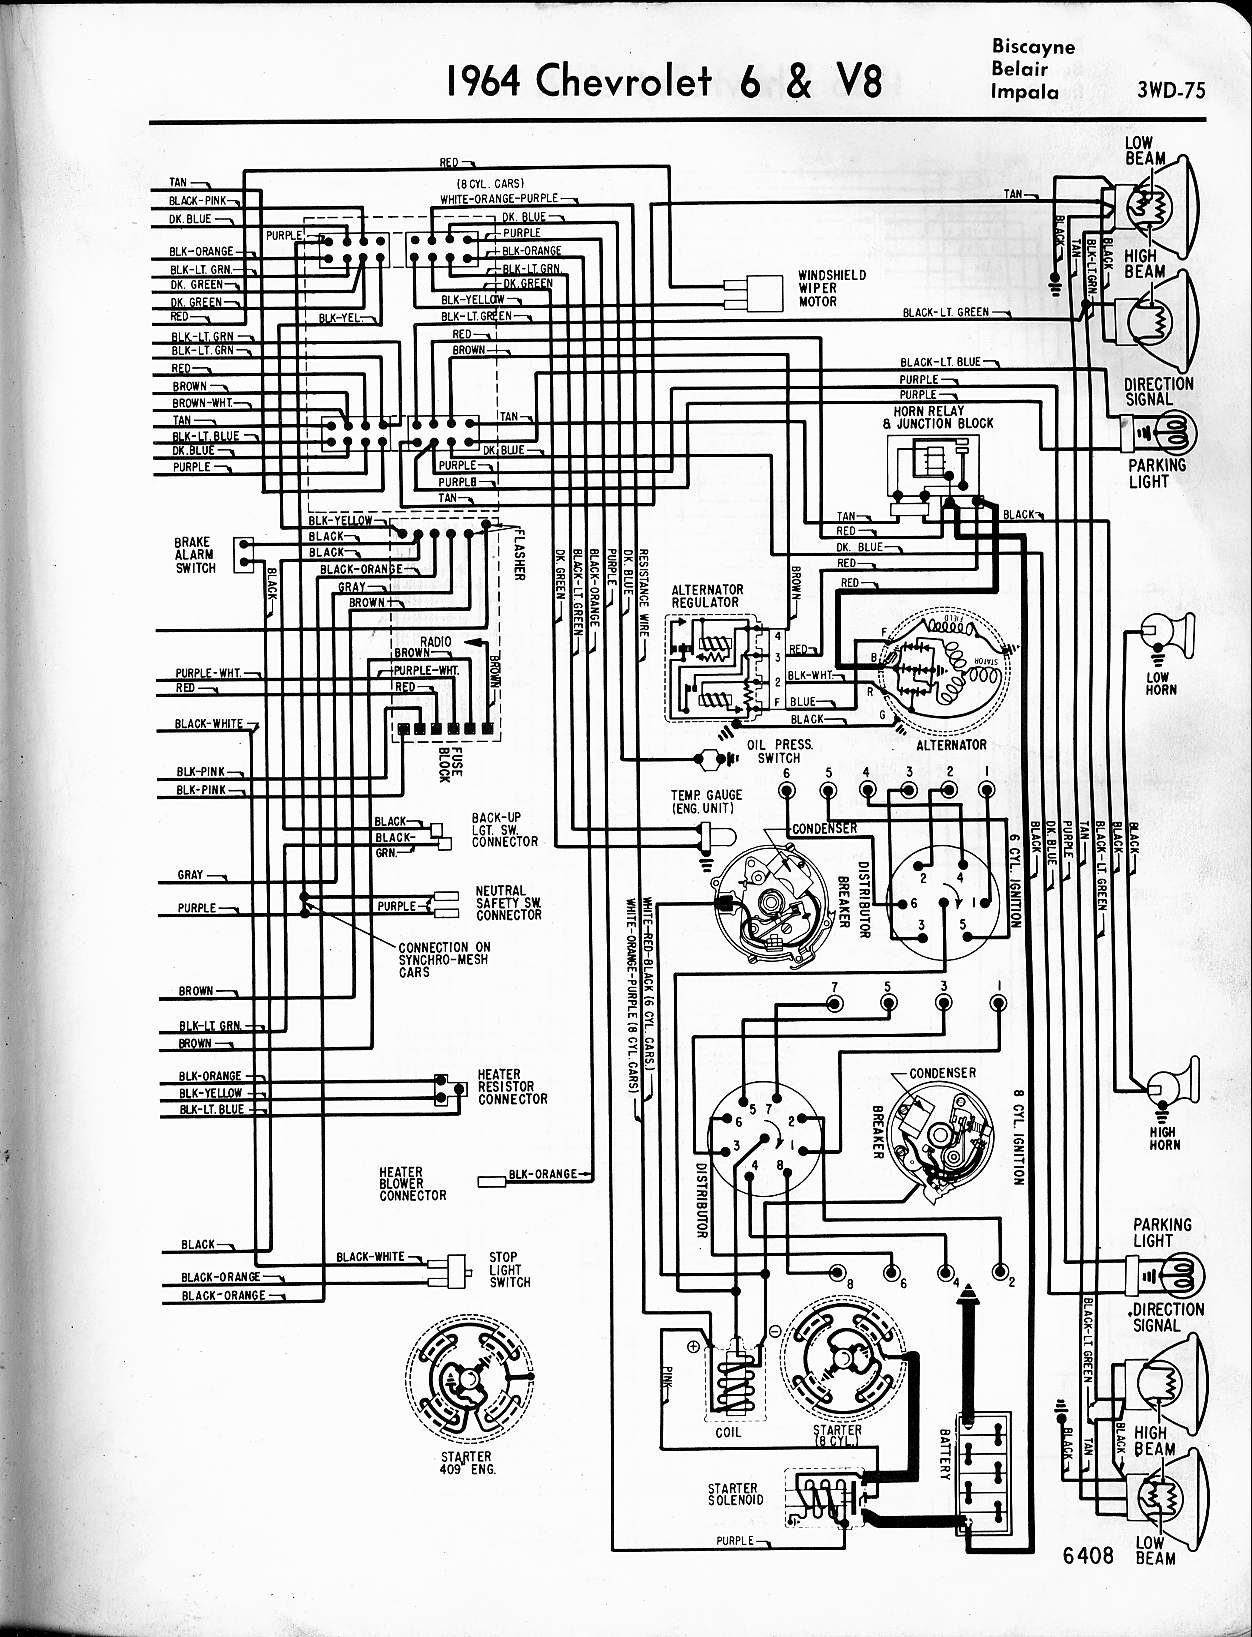 hight resolution of 57 65 chevy wiring diagrams 1964 impala tail light wiring diagram 1964 6 v8 biscayne